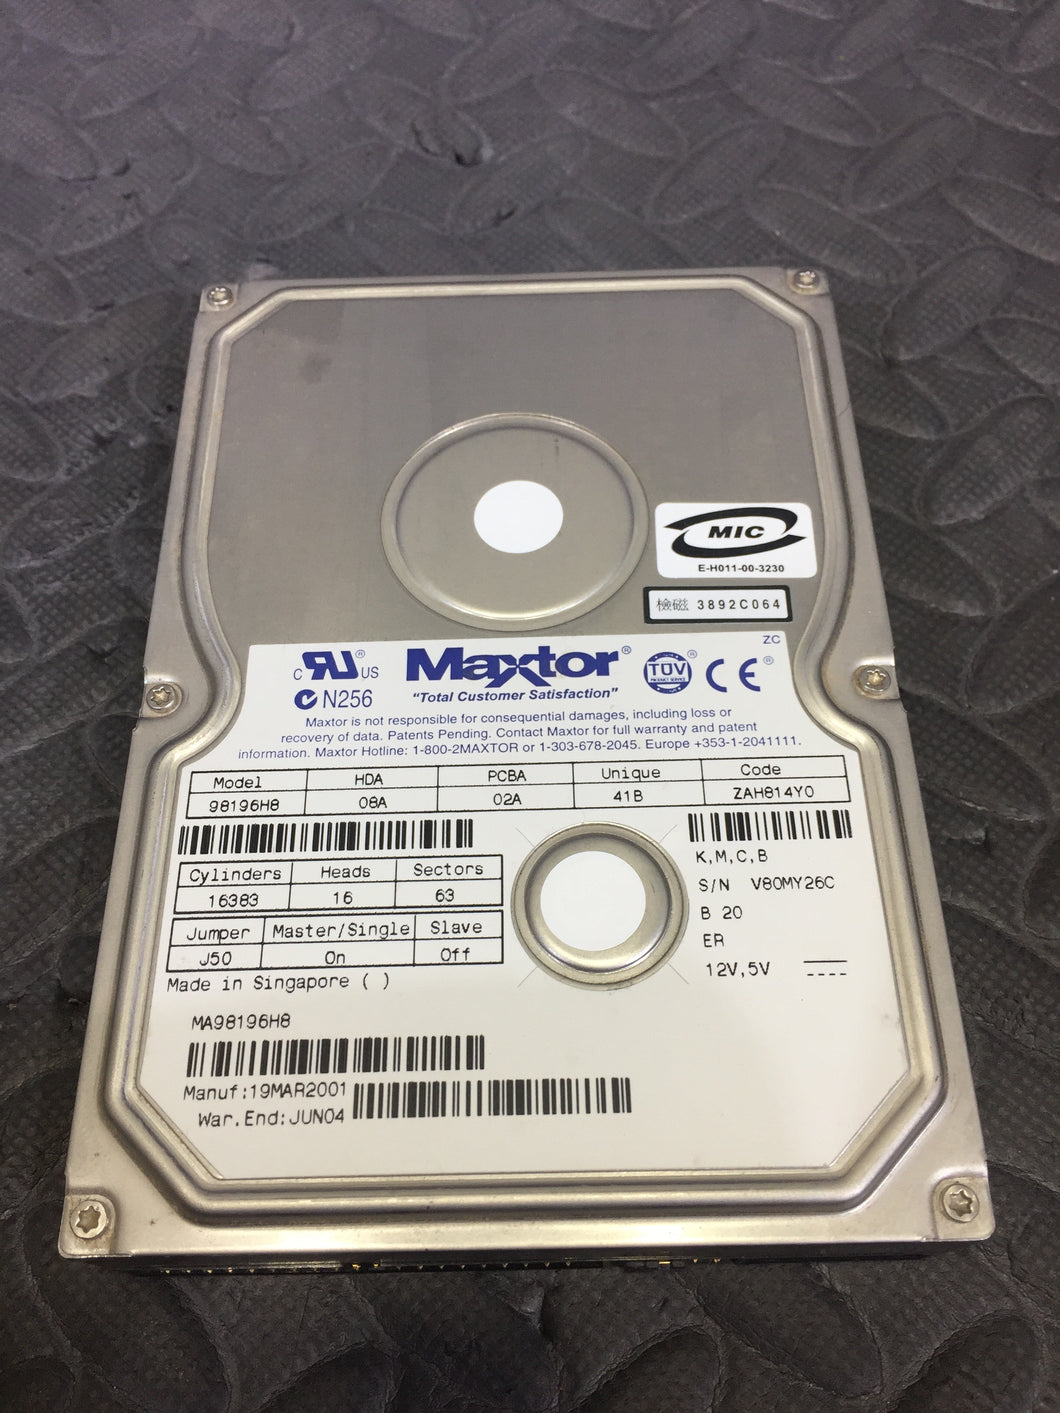 "Maxtor 98196H8 3.5"" IDE 5400RPM 2MB Cache 81.9GB HDD Tested Good! - AsIsStuff"